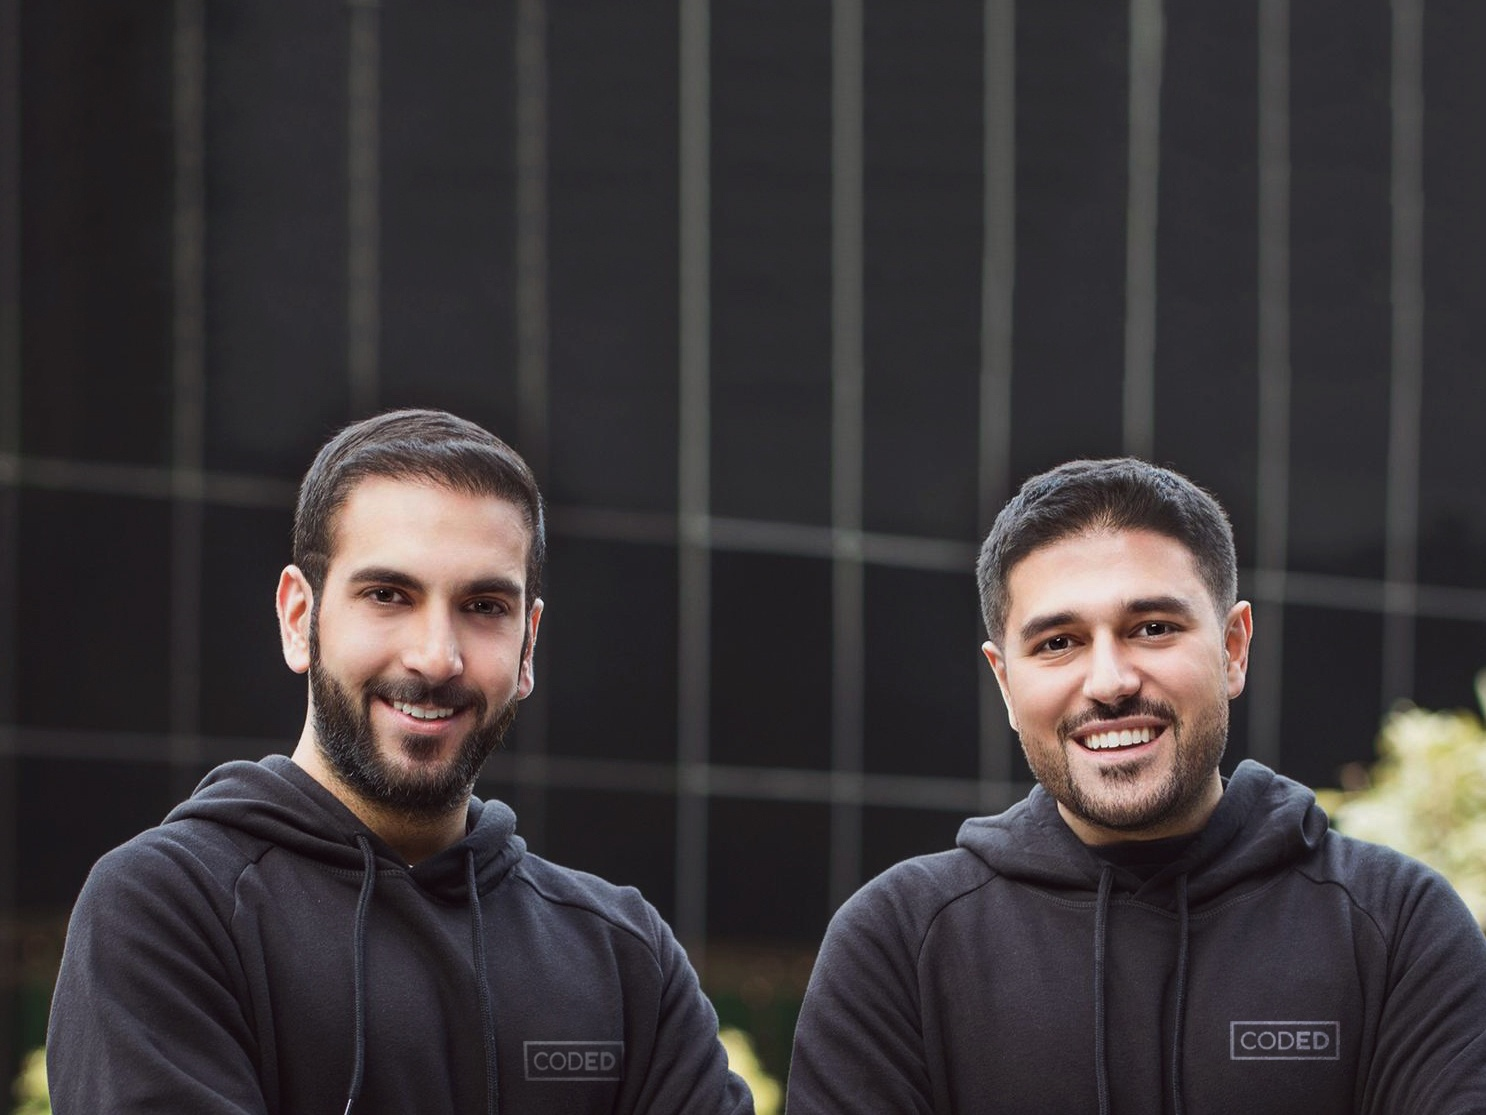 Kuwait-based coding academy Coded draws $1.3M from multiple investors